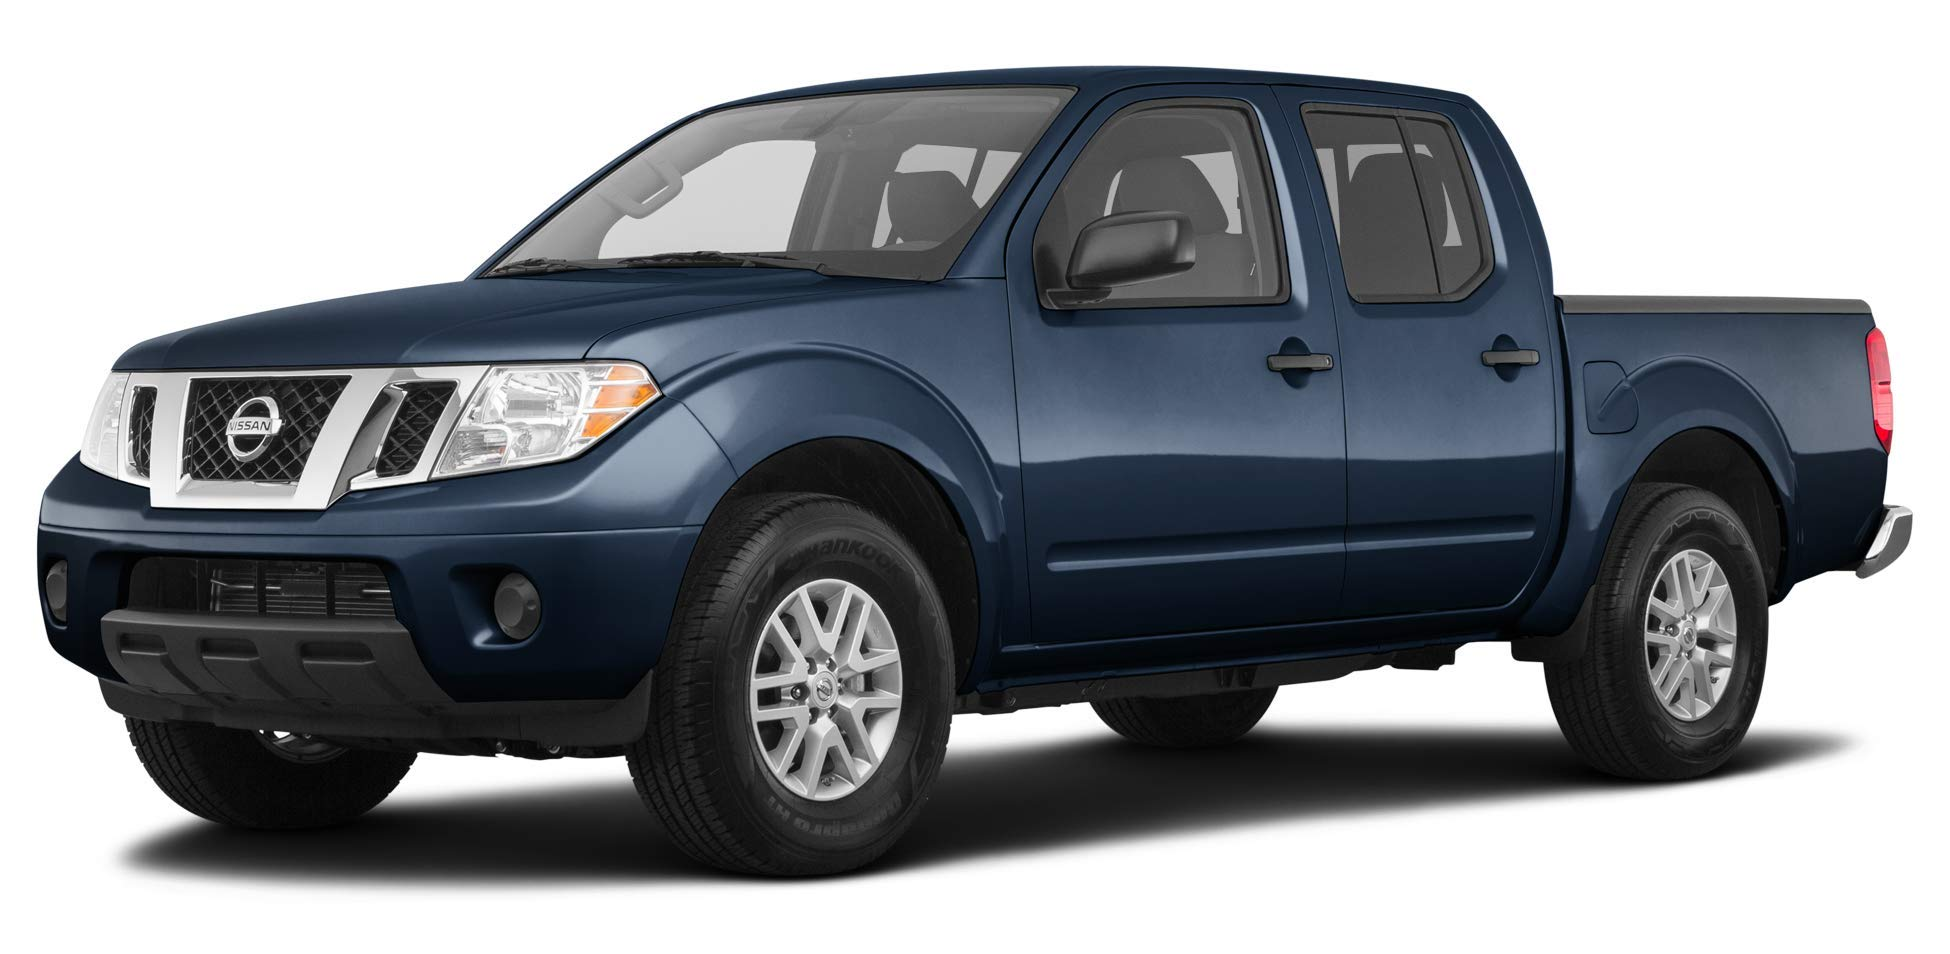 2000 Nissan Frontier Parts Diagram Additionally Nissan Frontier Parts